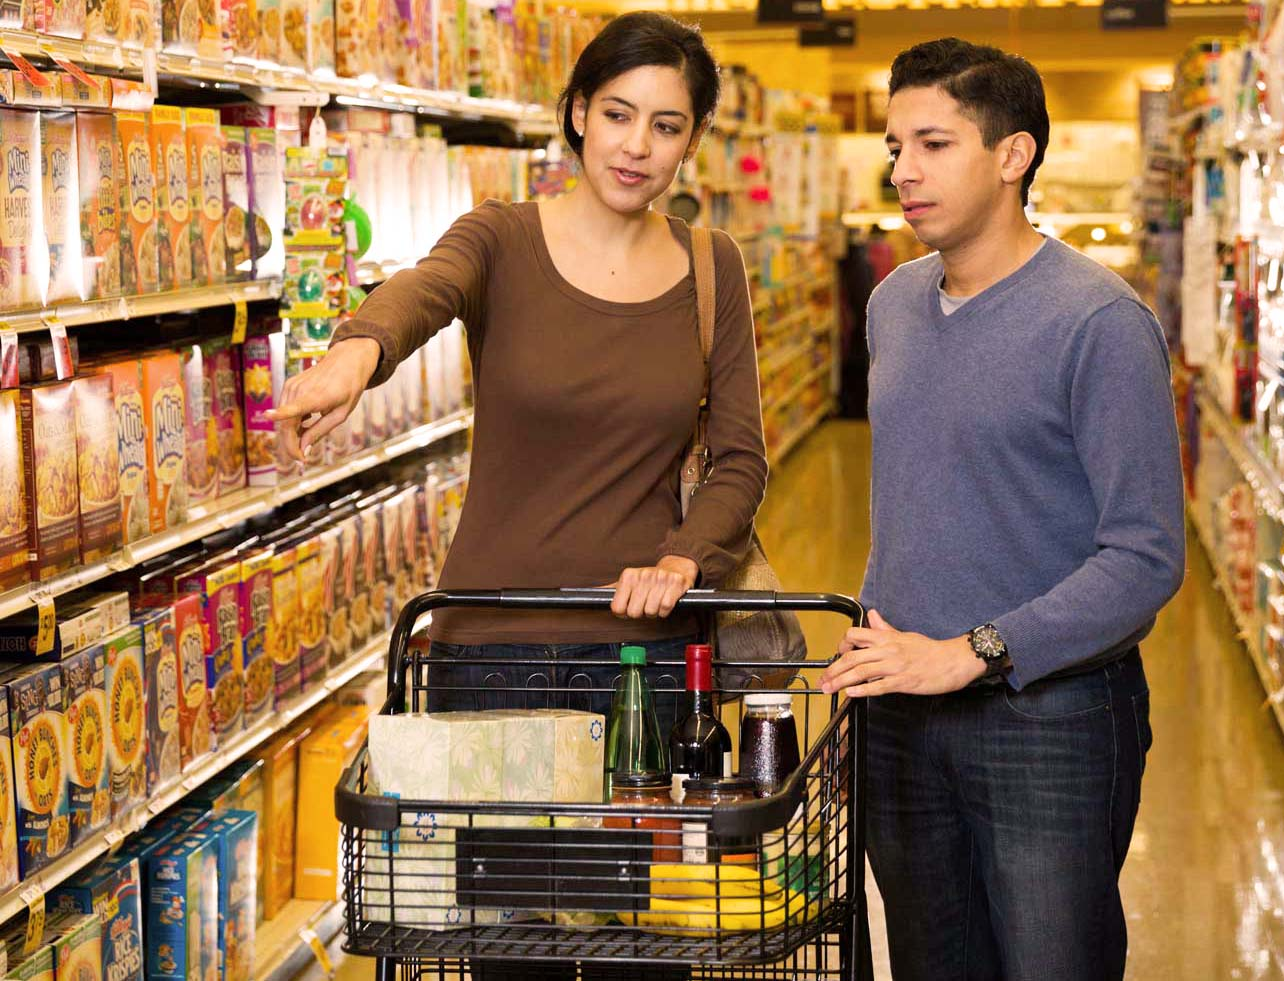 Grocery Shoppers and Transparency